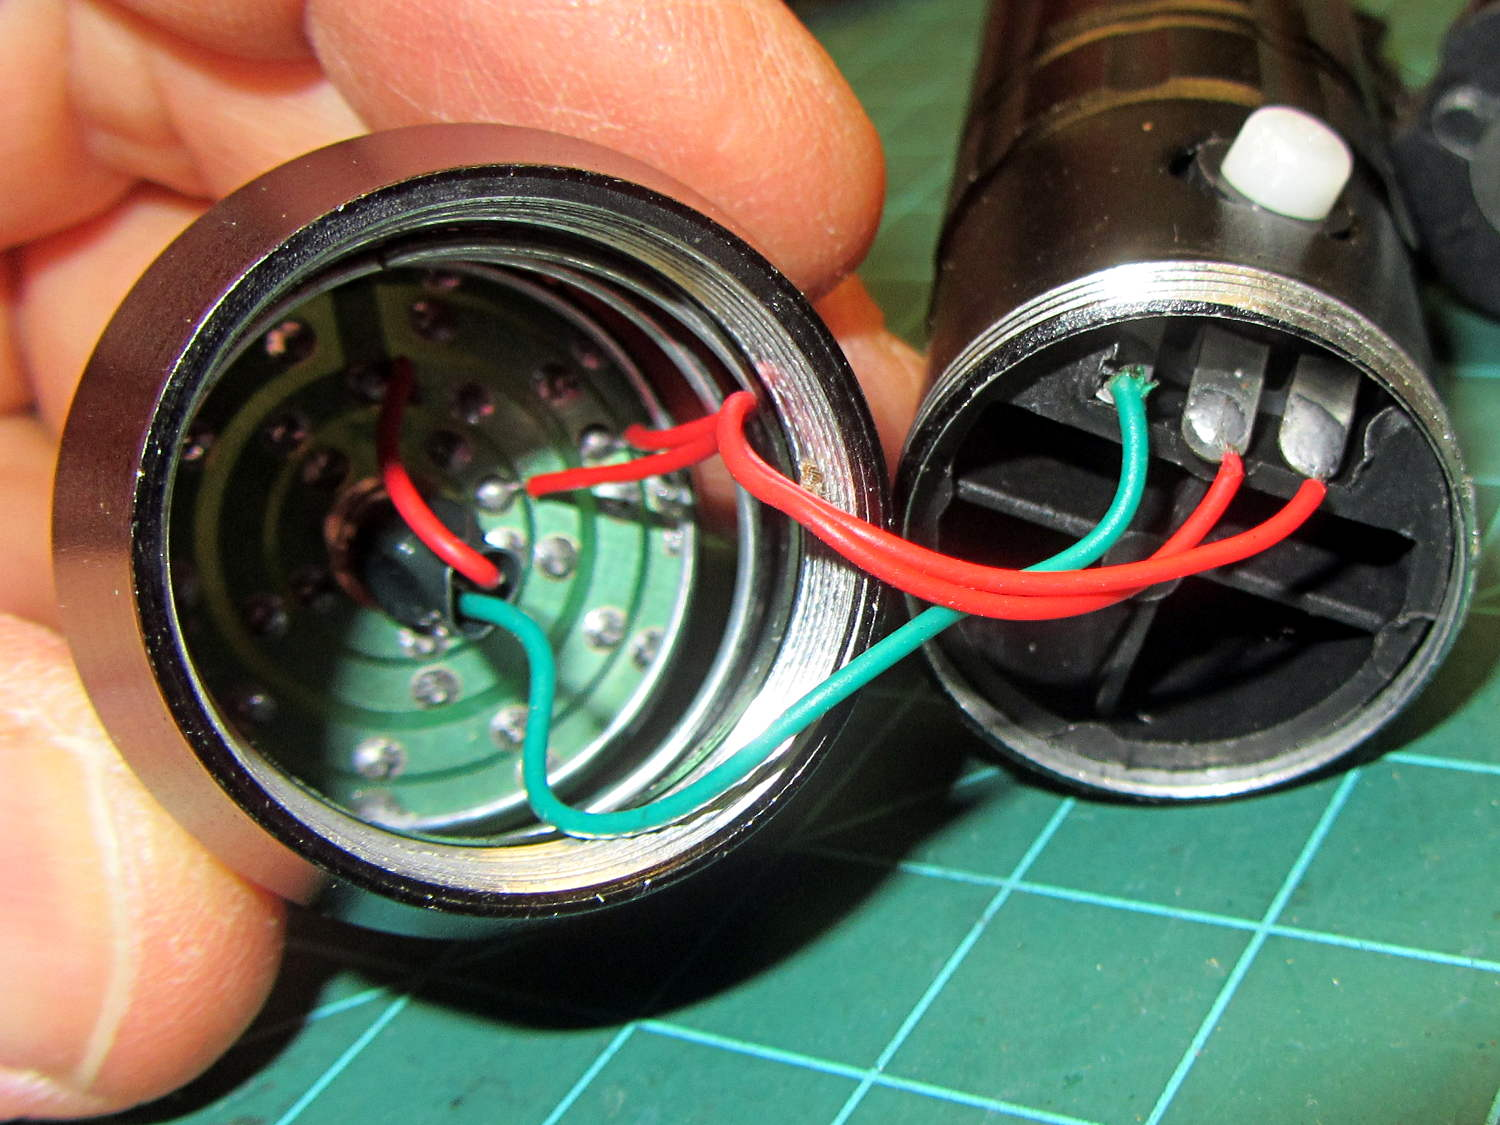 Wiring A Flashlight Simple Diagram Led For You Torch Switch Poor Solder Joints The